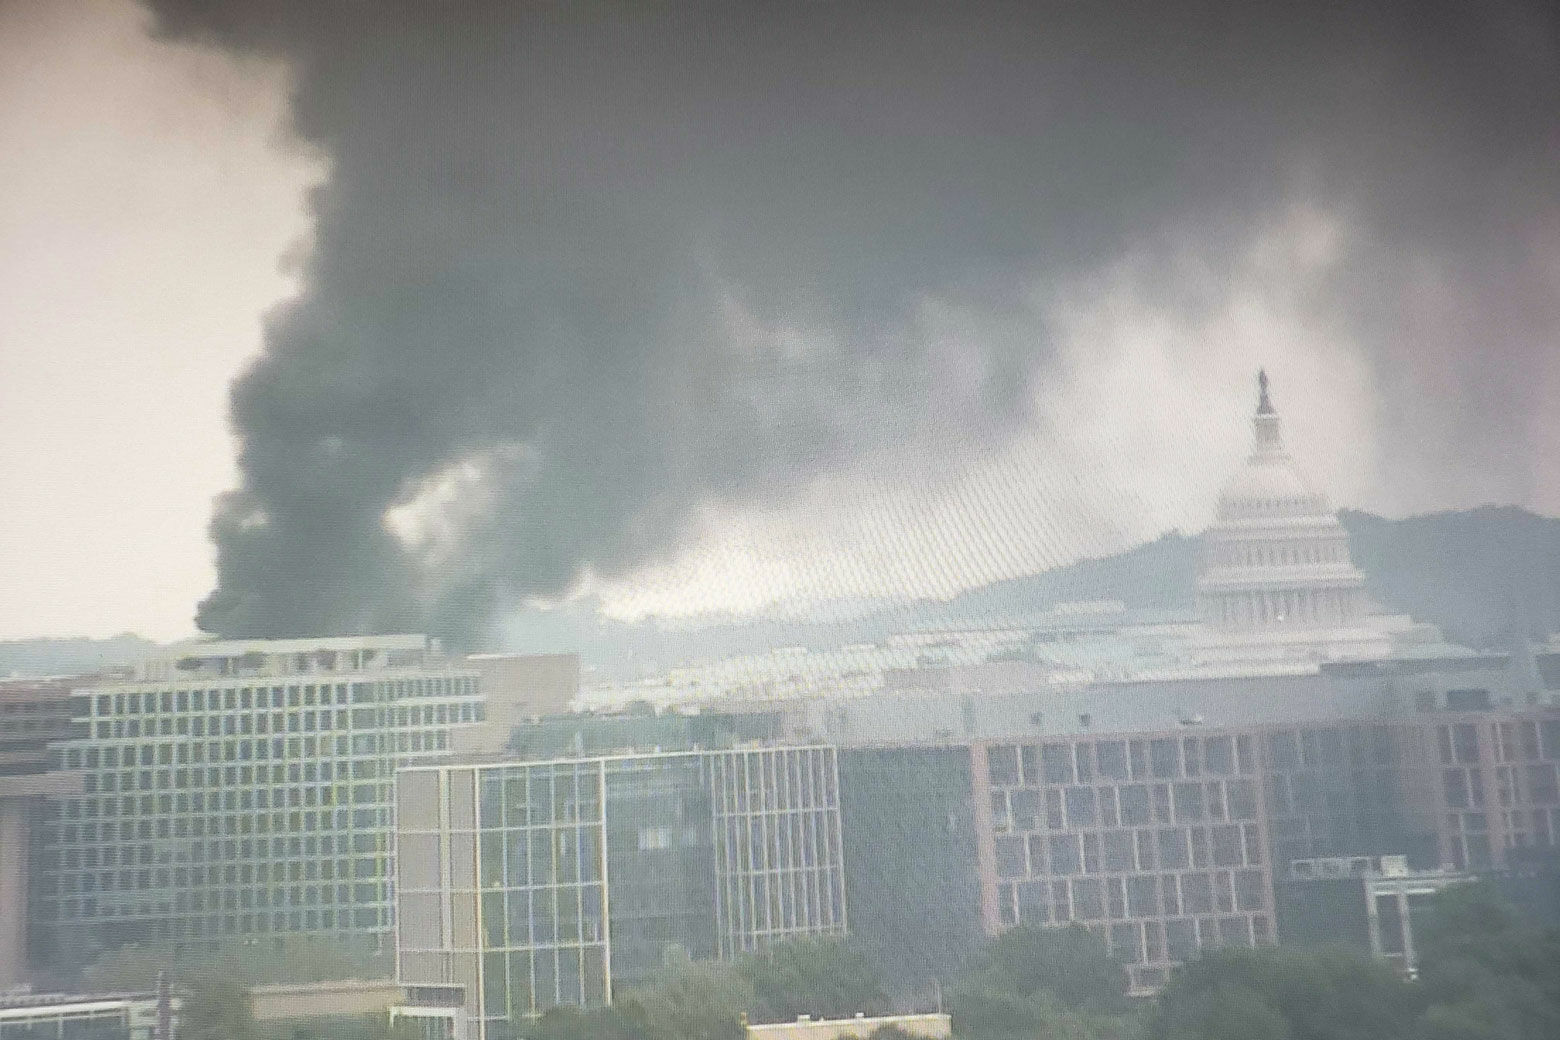 Fire on roof of future Metro HQ spews smoke through area